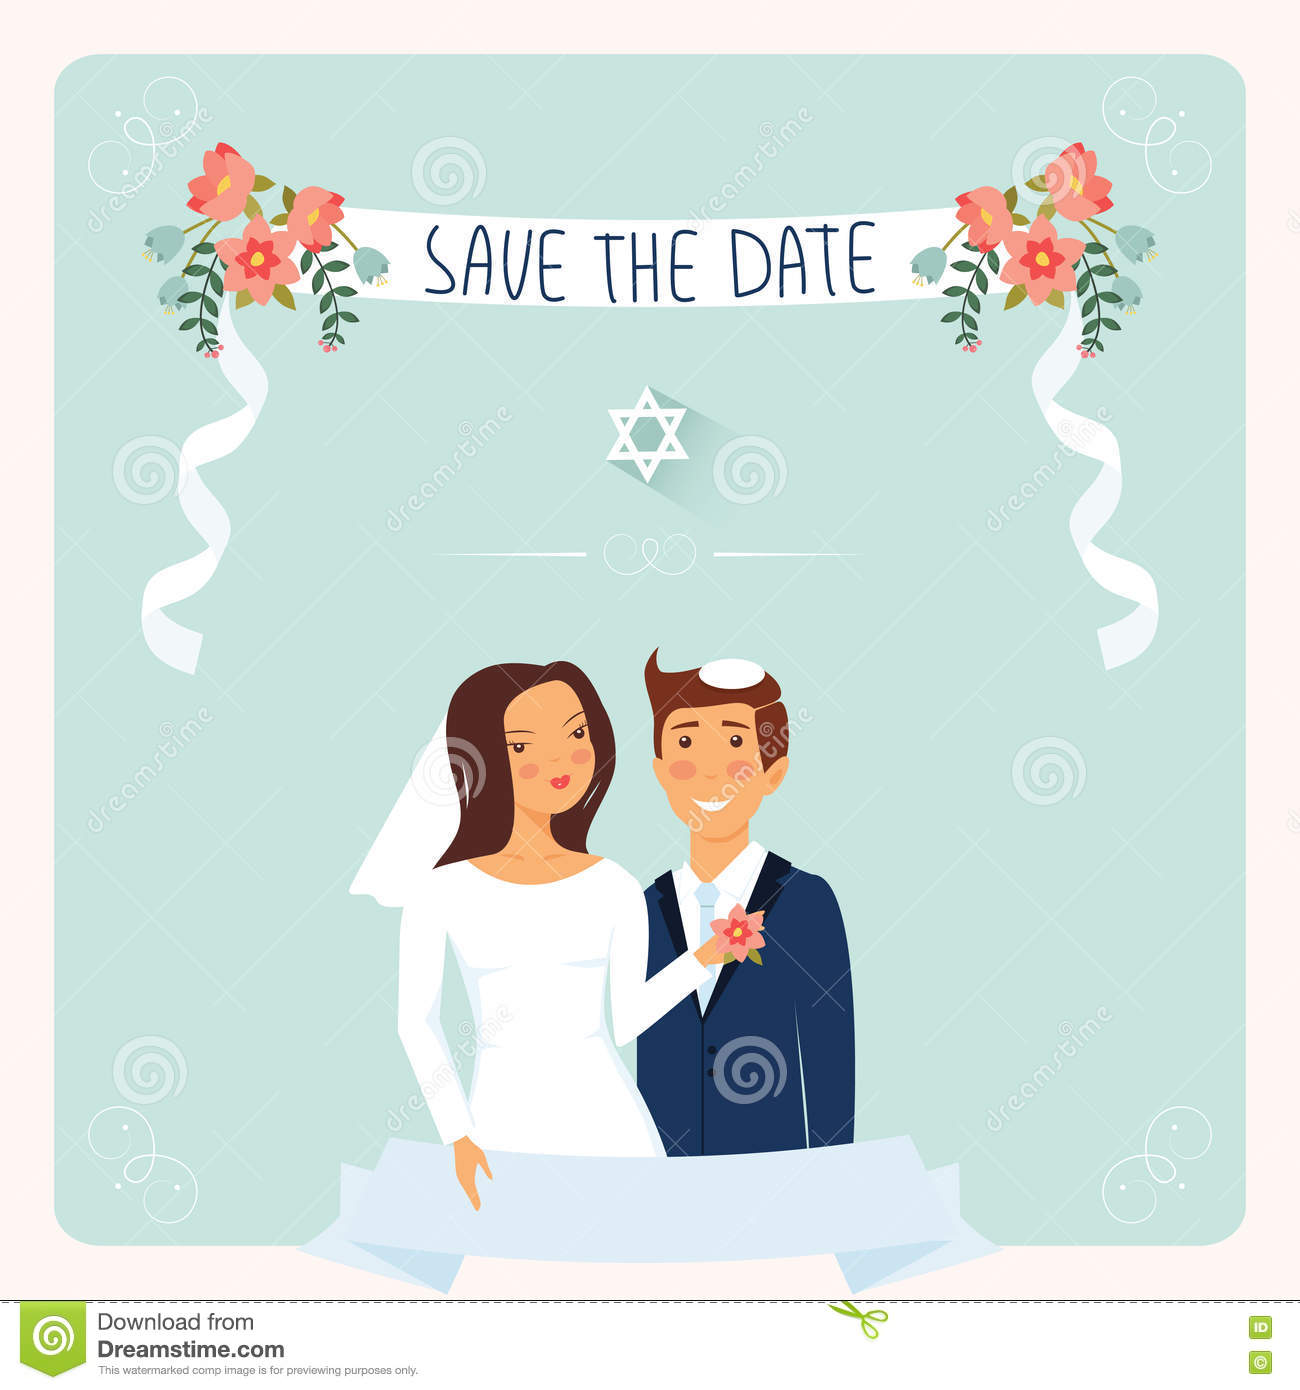 Wedding Invitation Template. Stock Vector - Illustration of design